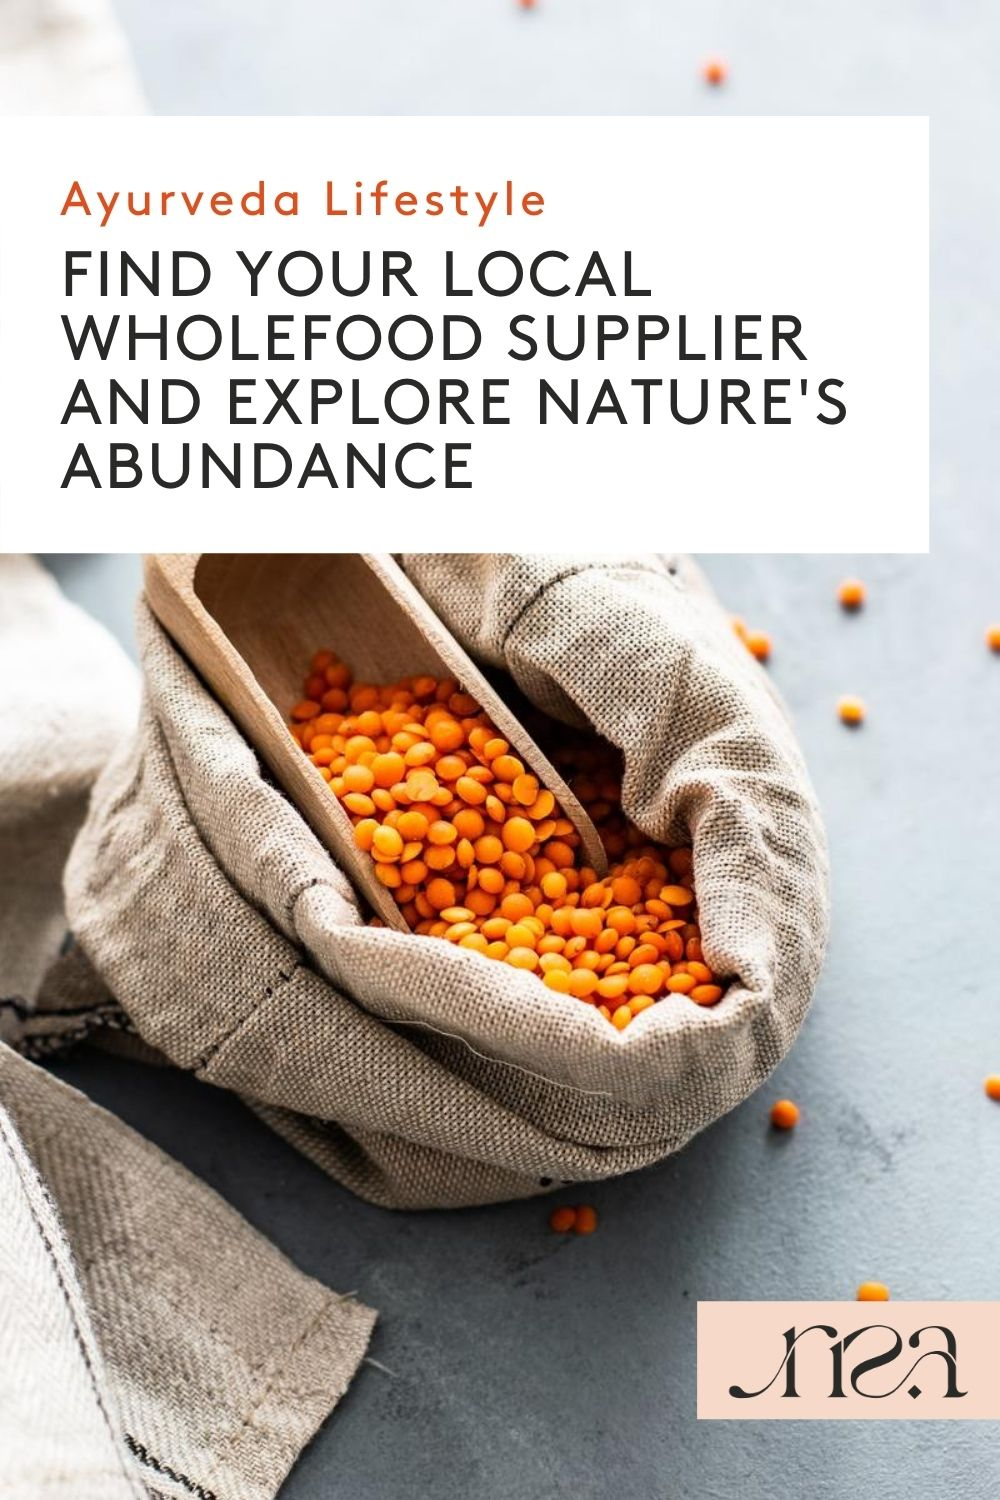 Find Your Local Wholefood Supplier and Explore Nature's Abundance